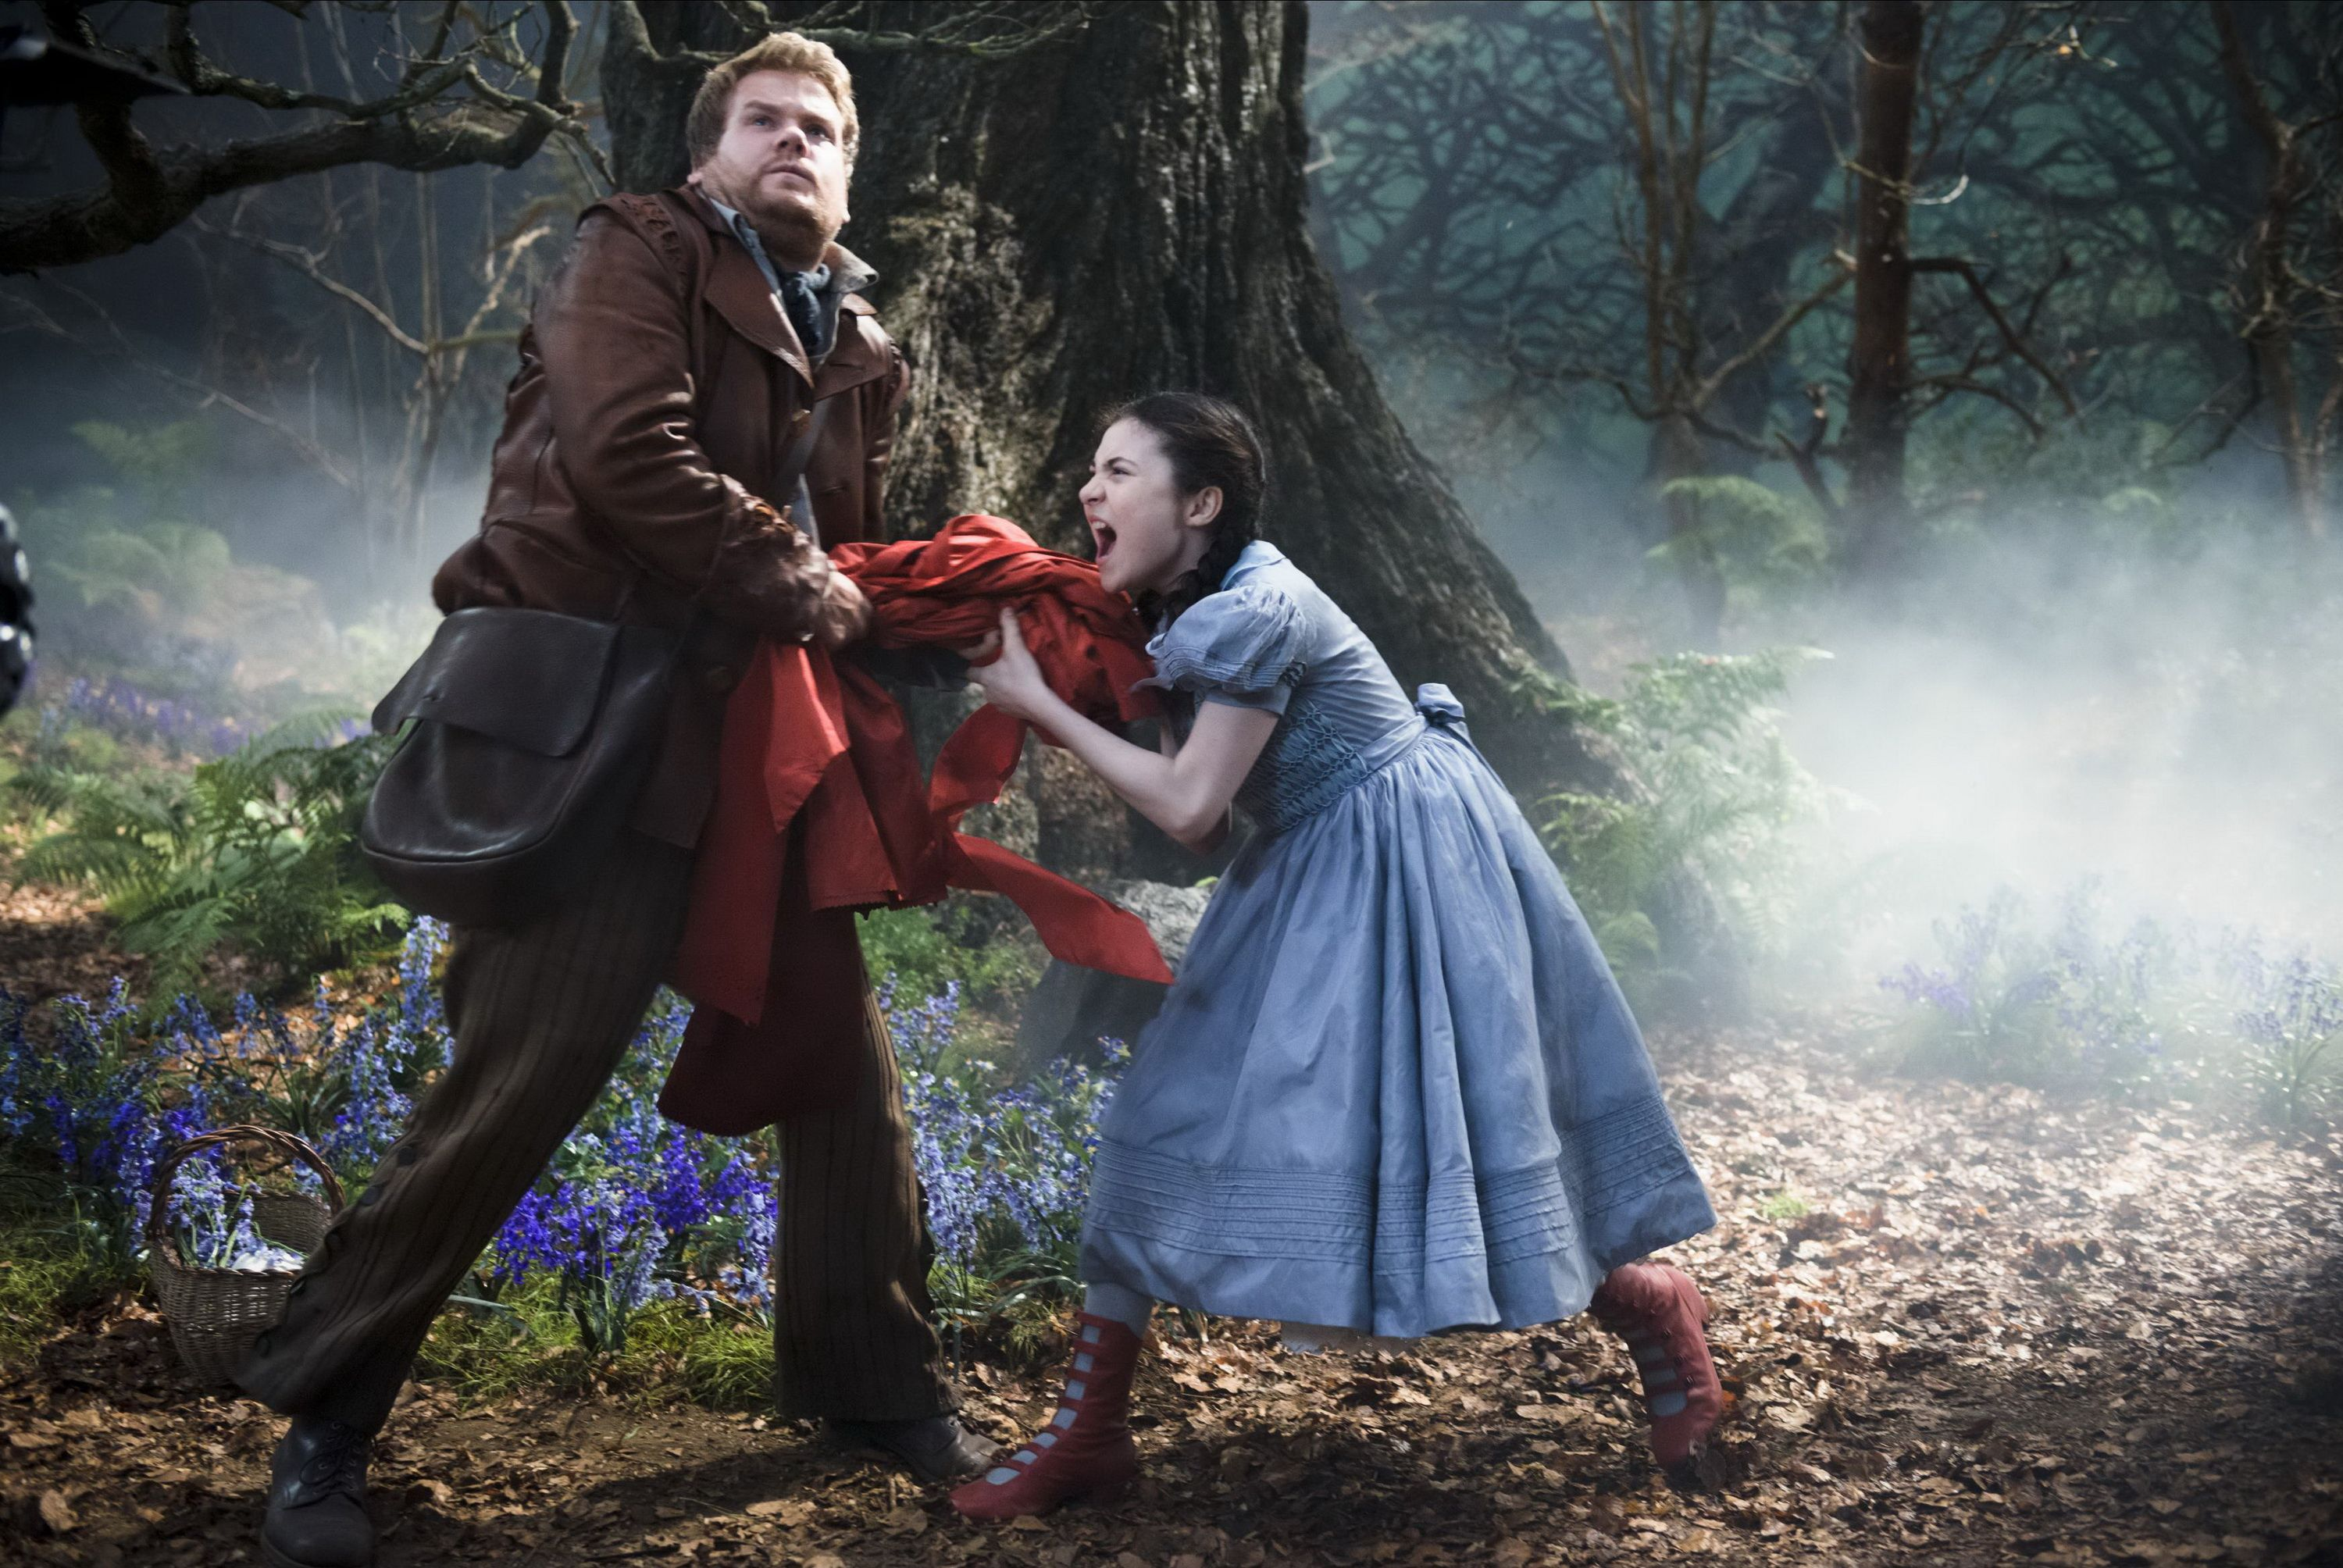 New Into The Woods Images Featuring Meryl Streep And Johnny Depp ...